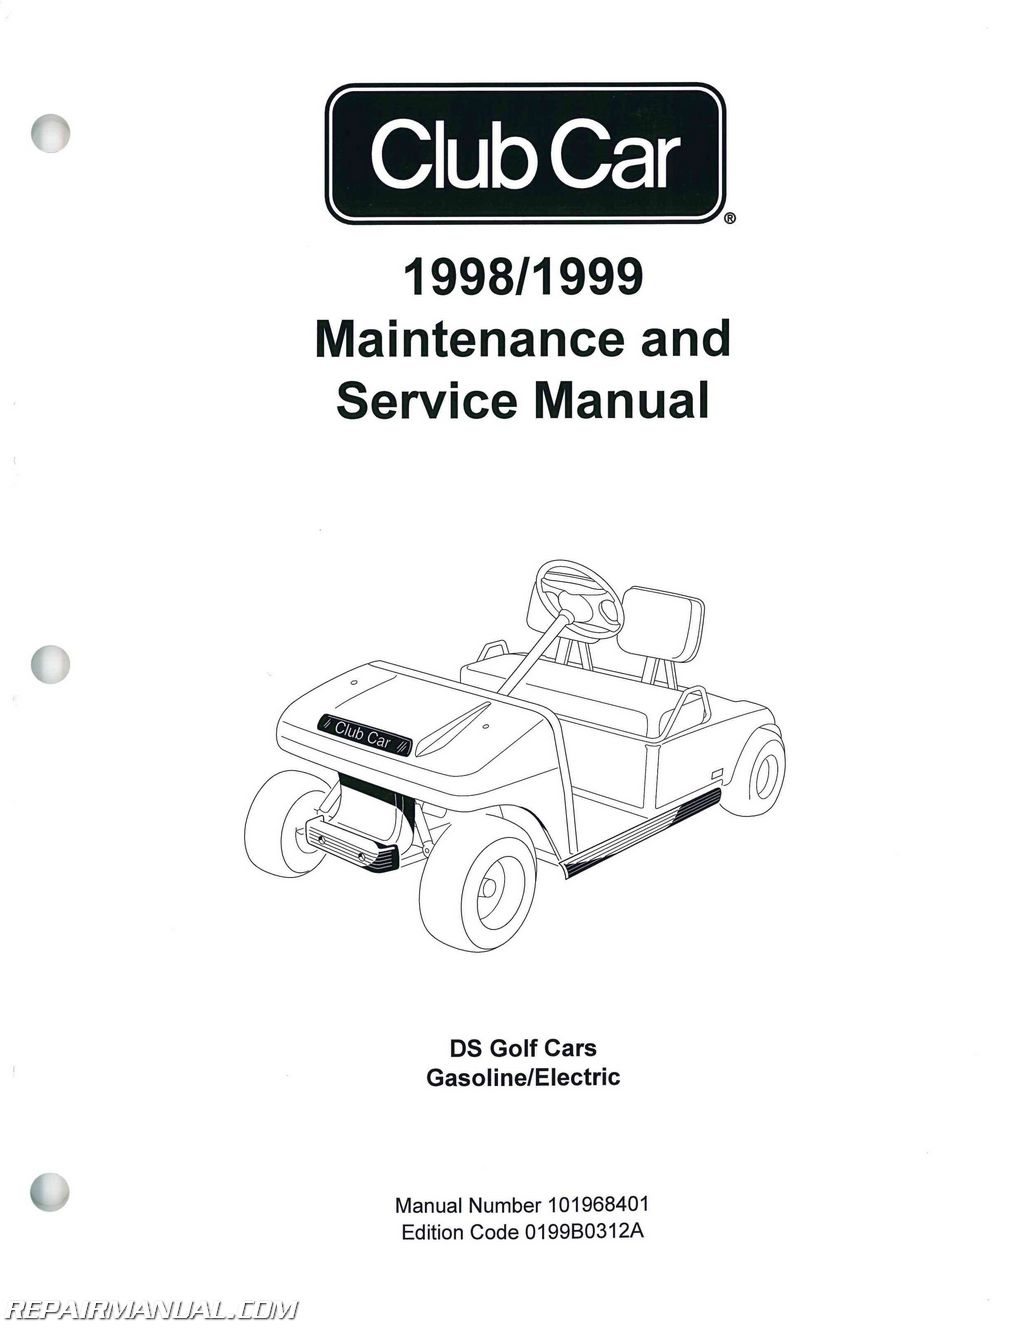 1998 1999 club car ds golf car service manual rh repairmanual com yamaha golf cart service manual free yamaha golf cart shop manuals